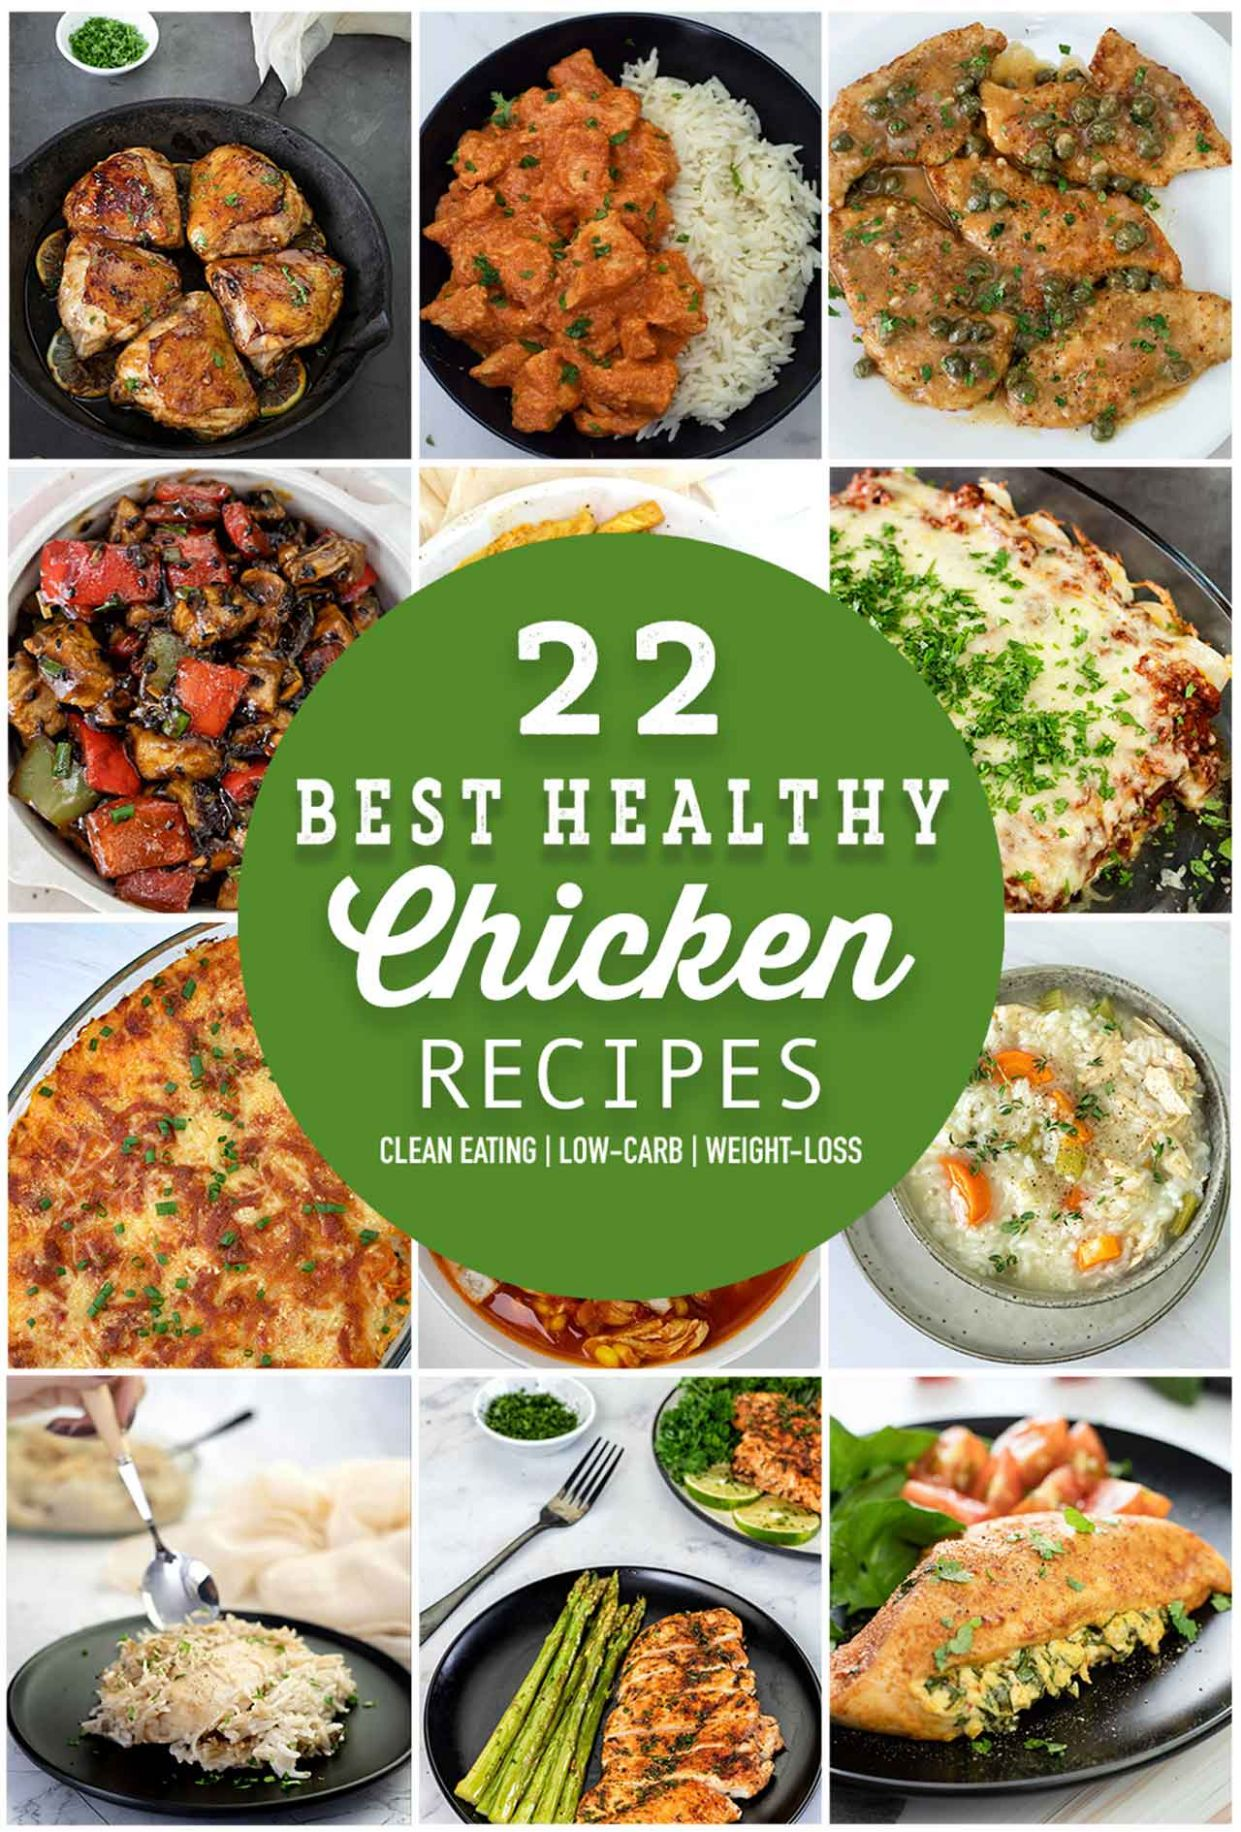 9 Best Healthy Chicken Recipes - A List For The White Meat Lovers - Recipes For Weight Loss Pakistan